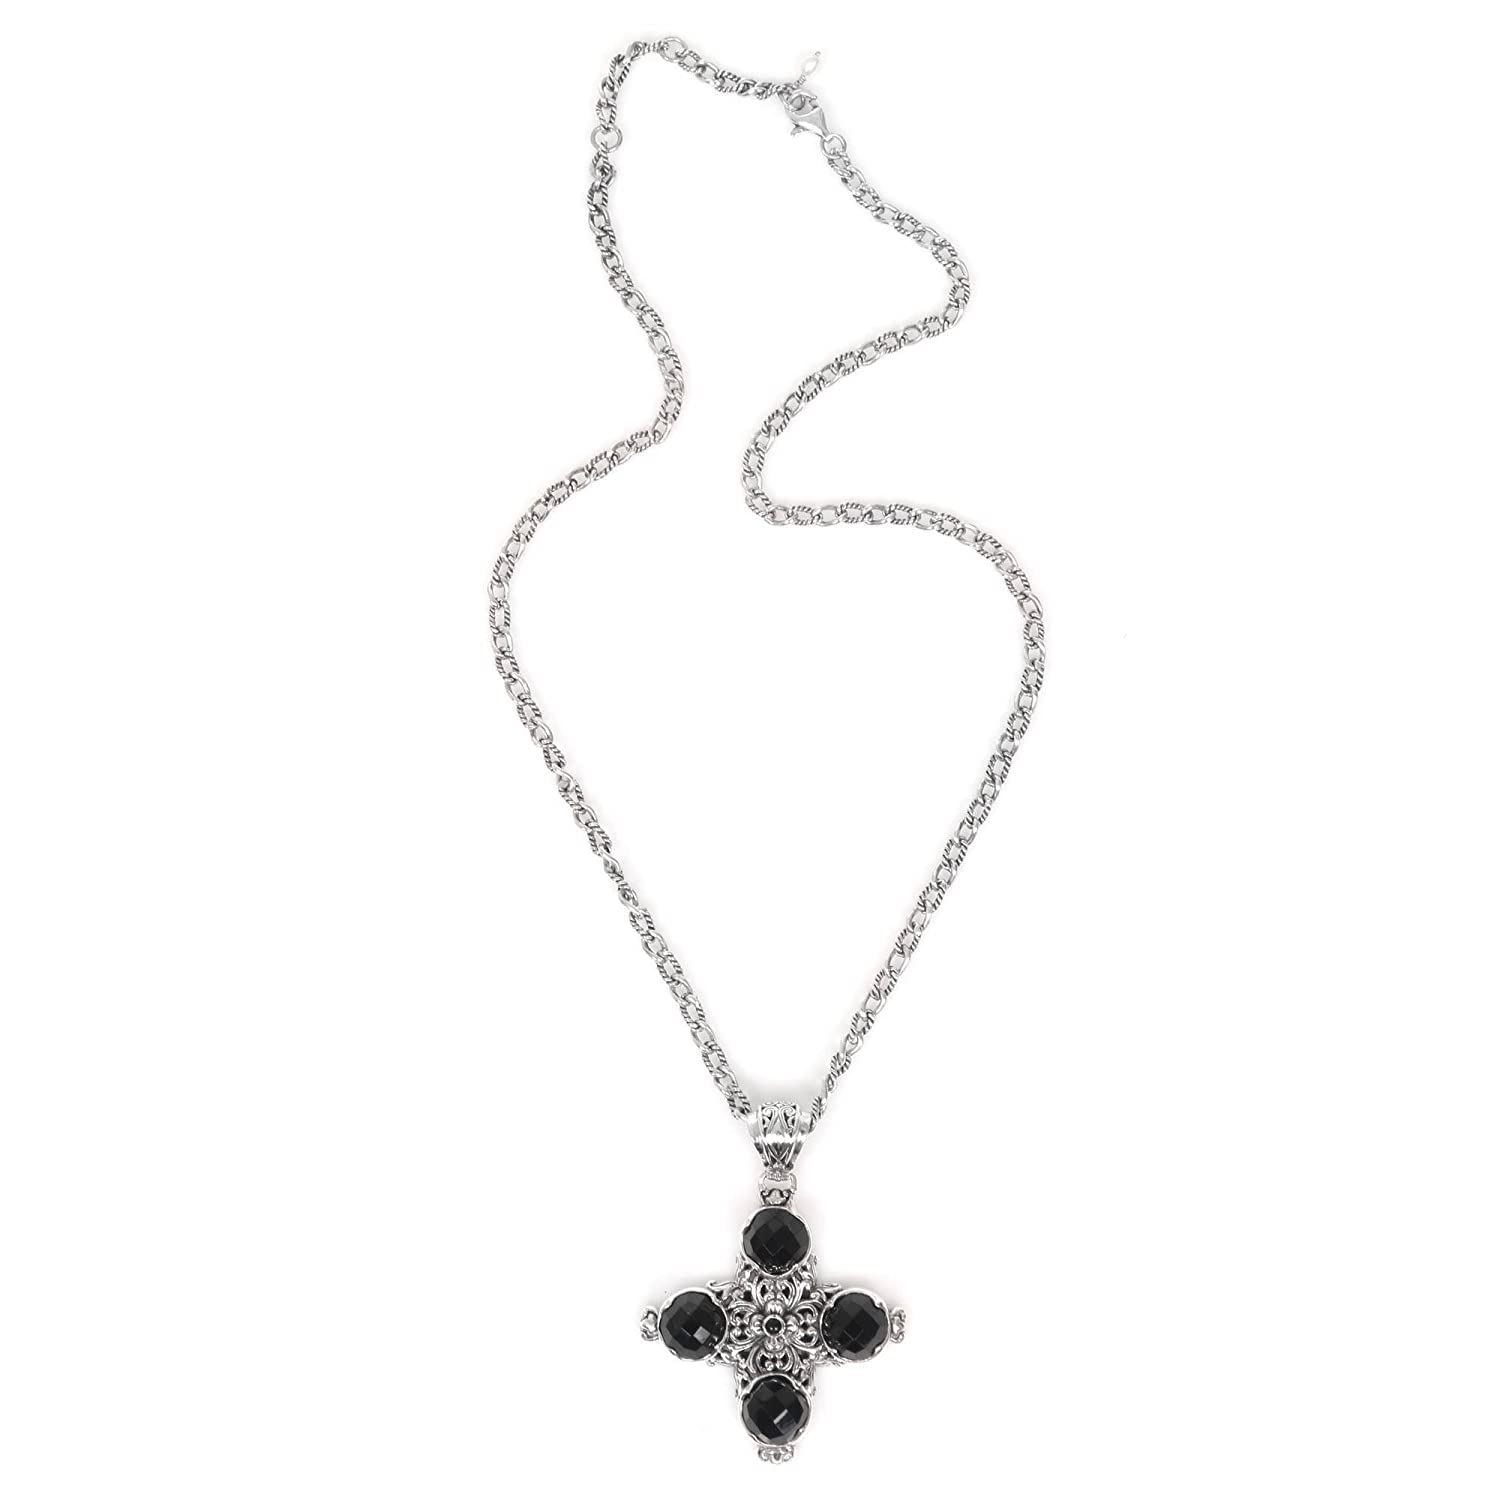 NOVICA Onyx Silver White Cultured Freshwater Pearl .925 Silver Necklace Pillars of Faith 19.75